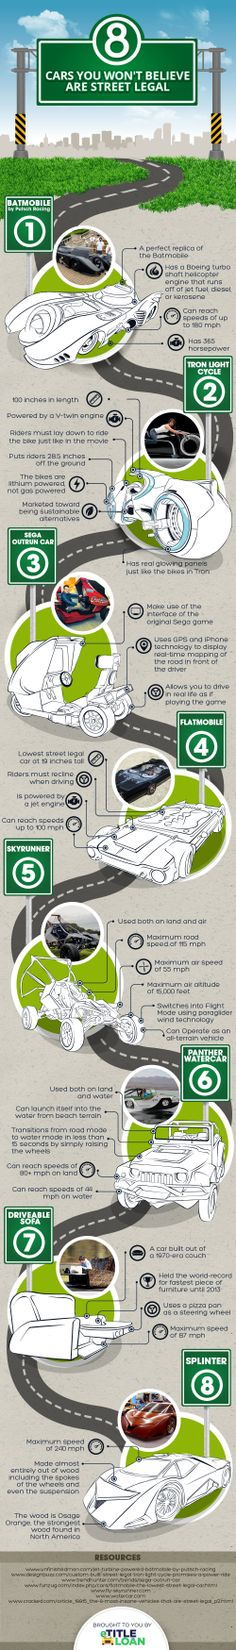 8 Cars You Won't Believe Are Street Legal   #Infographic #Cars #Entertainment